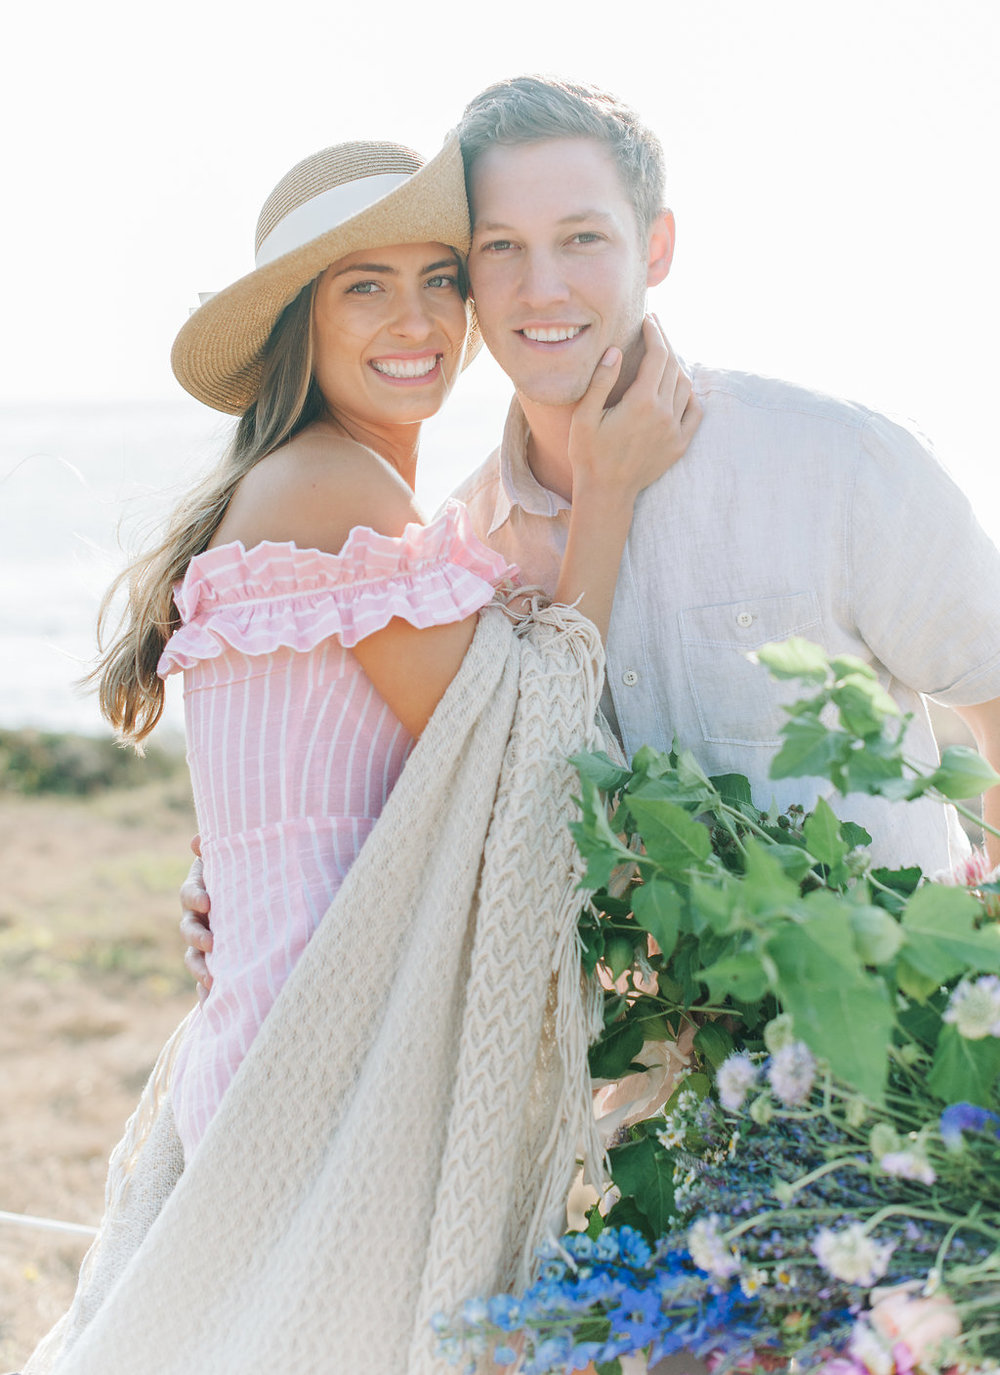 Summer Engagement Session now on Cottage Hill | cottagehill.co29.jpg